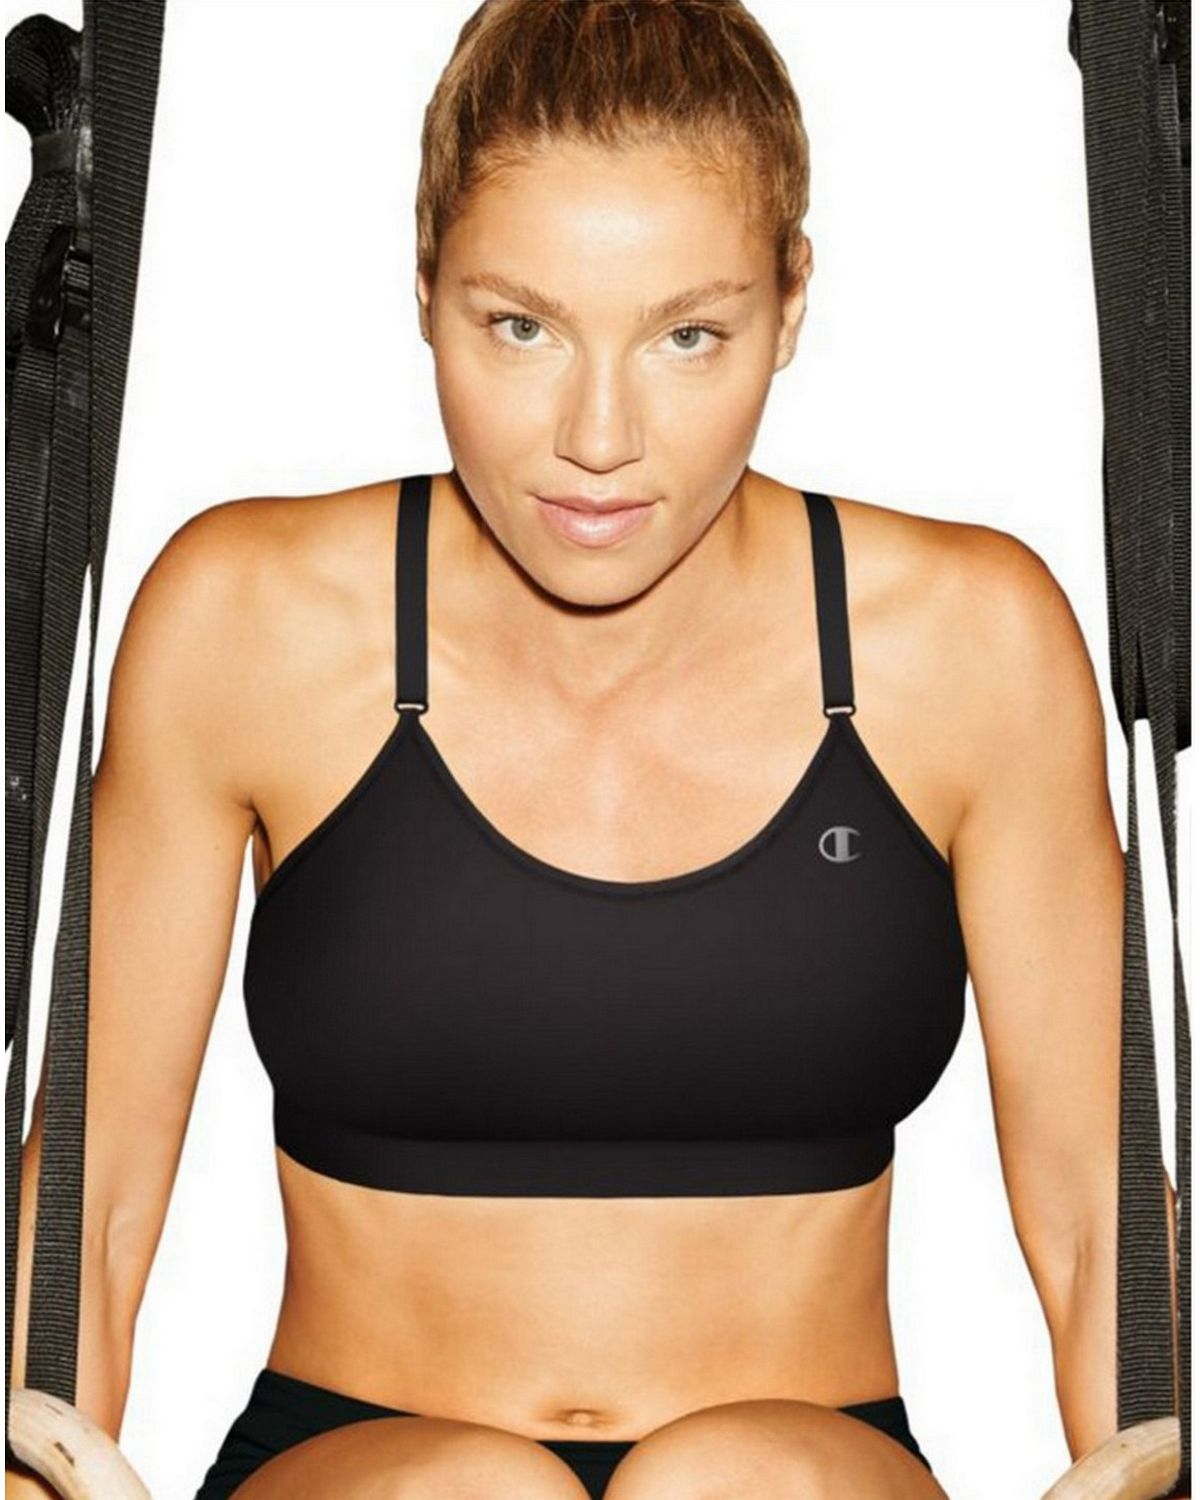 Champion B9500 Absolute Cami Sports Bra - Black - L B9500